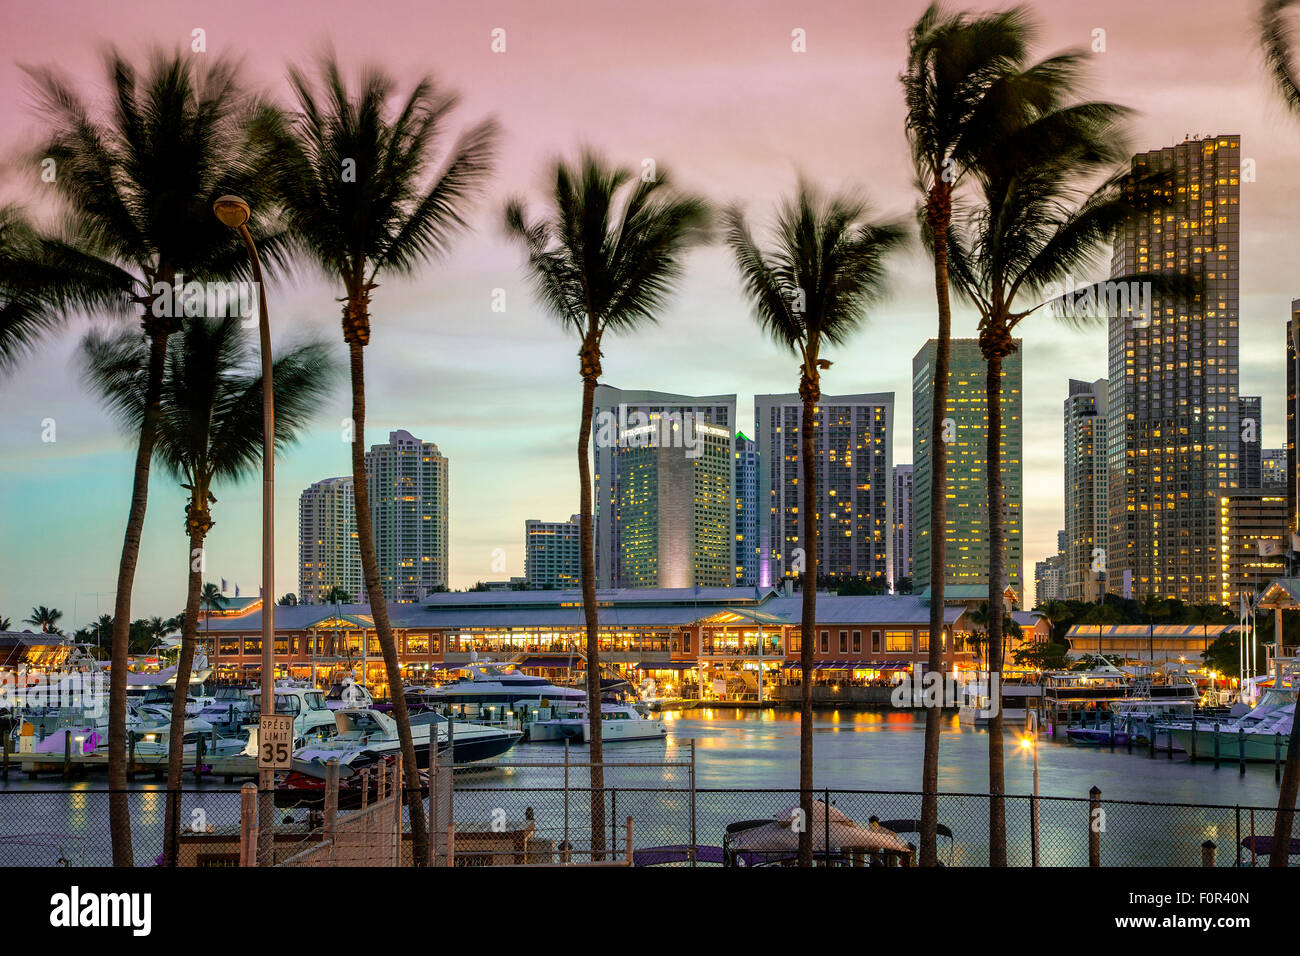 Miami, Bayside Mall at Dusk Photo Stock